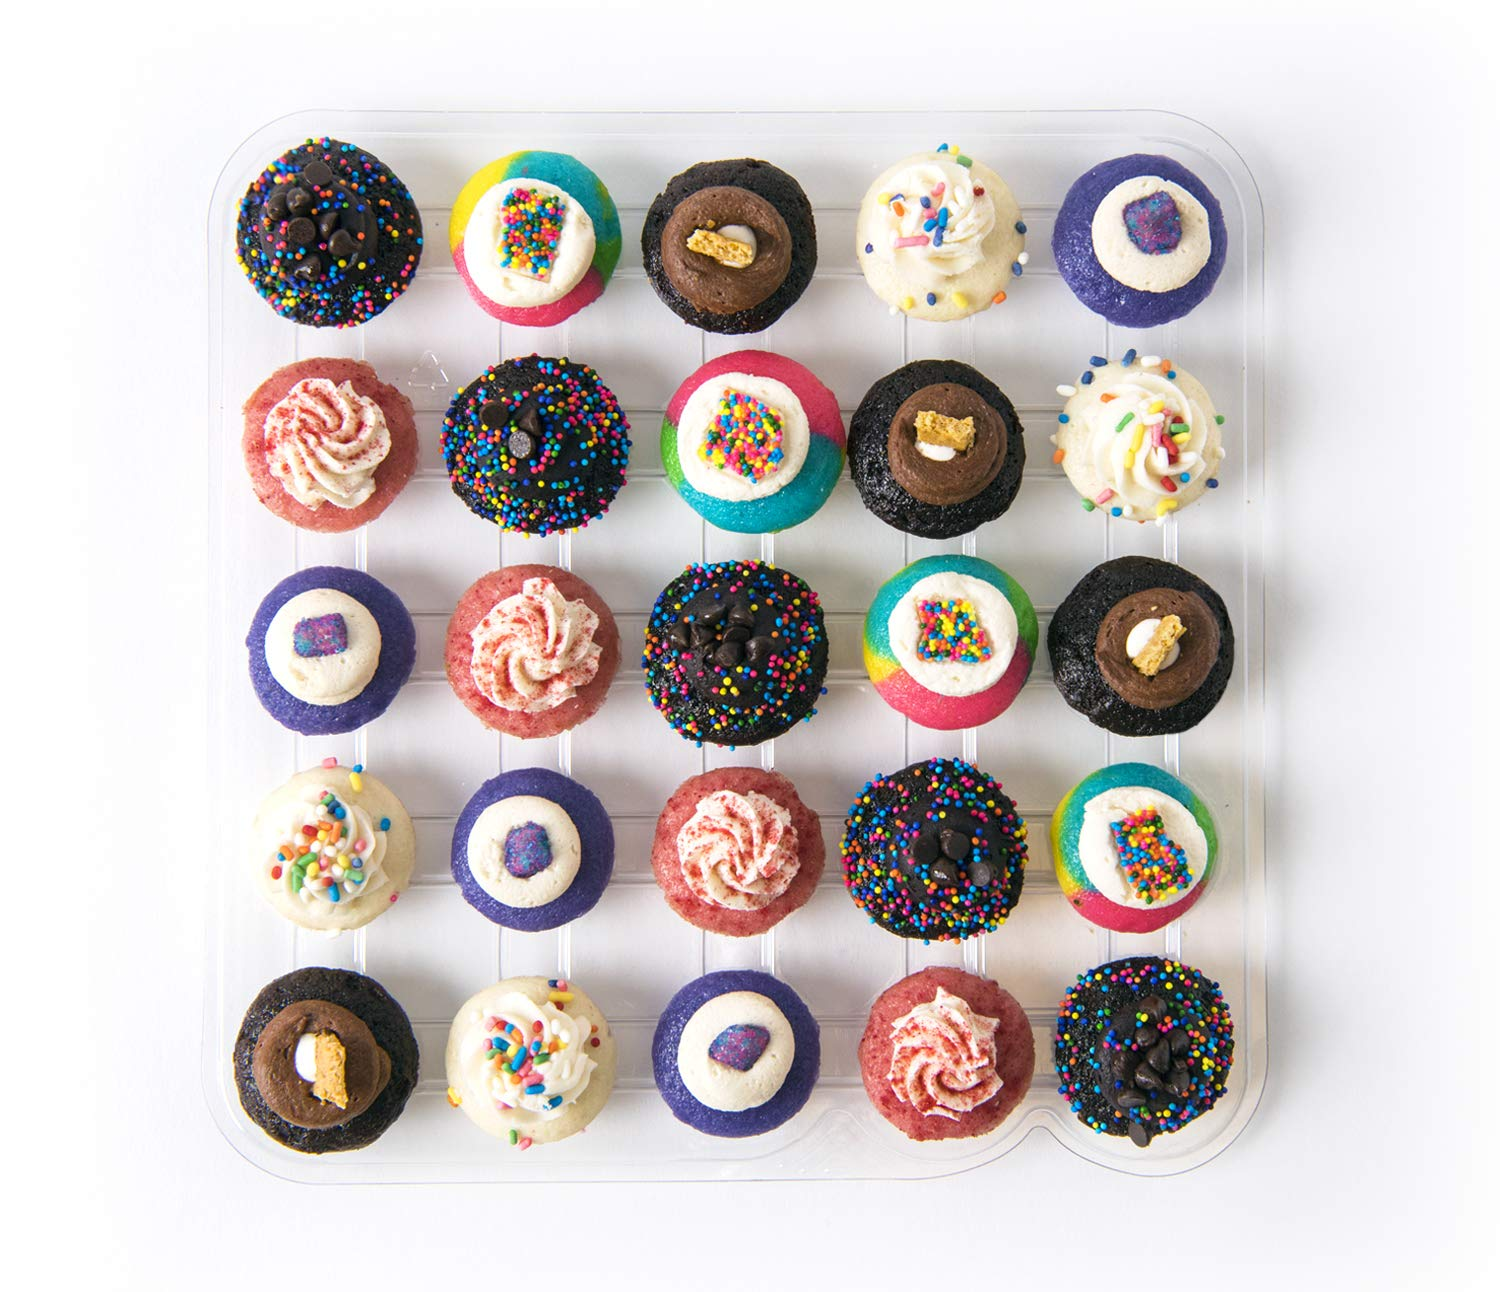 Baked by Melissa Current Cravings Assortment - Assorted Bite-Size Cupcakes (25 Cupcakes)